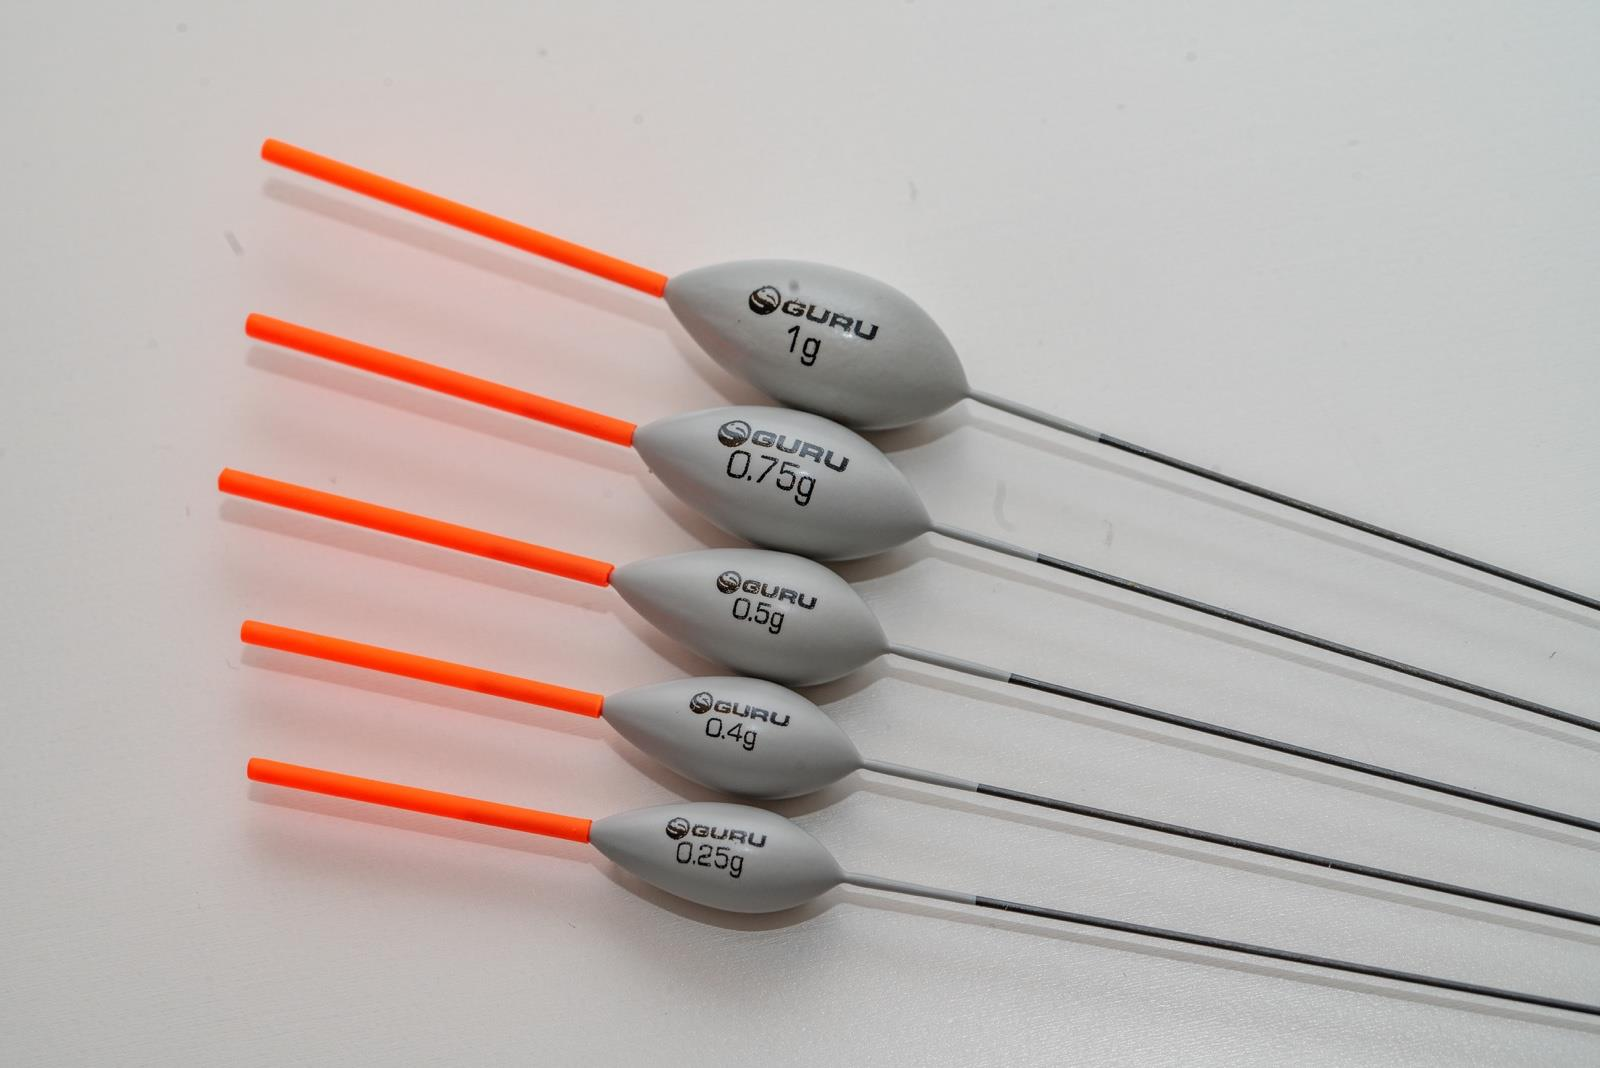 Indexbild 9 - Guru Pole Fishing Floats by Mick Wilkinson, Diamond, Pinger Wire or Carbon Stem